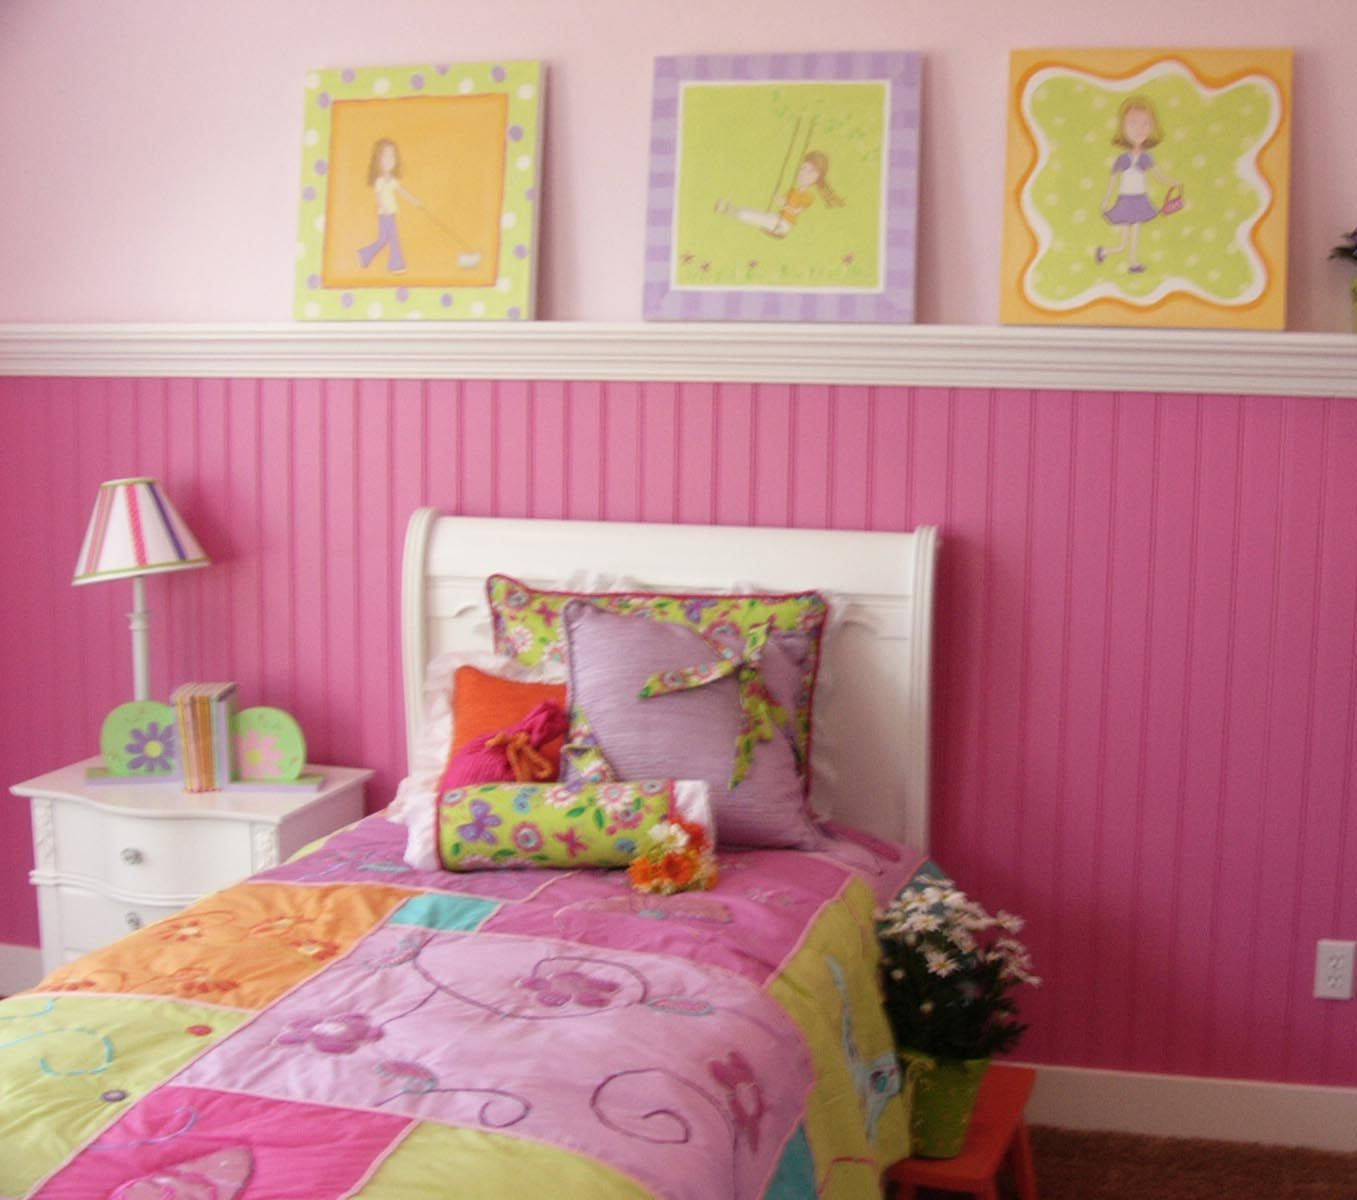 70 best ideas about Girls bedrooms on Pinterest   Mural ideas  Pink bedroom  decor and Girl bedroom paint. 70 best ideas about Girls bedrooms on Pinterest   Mural ideas